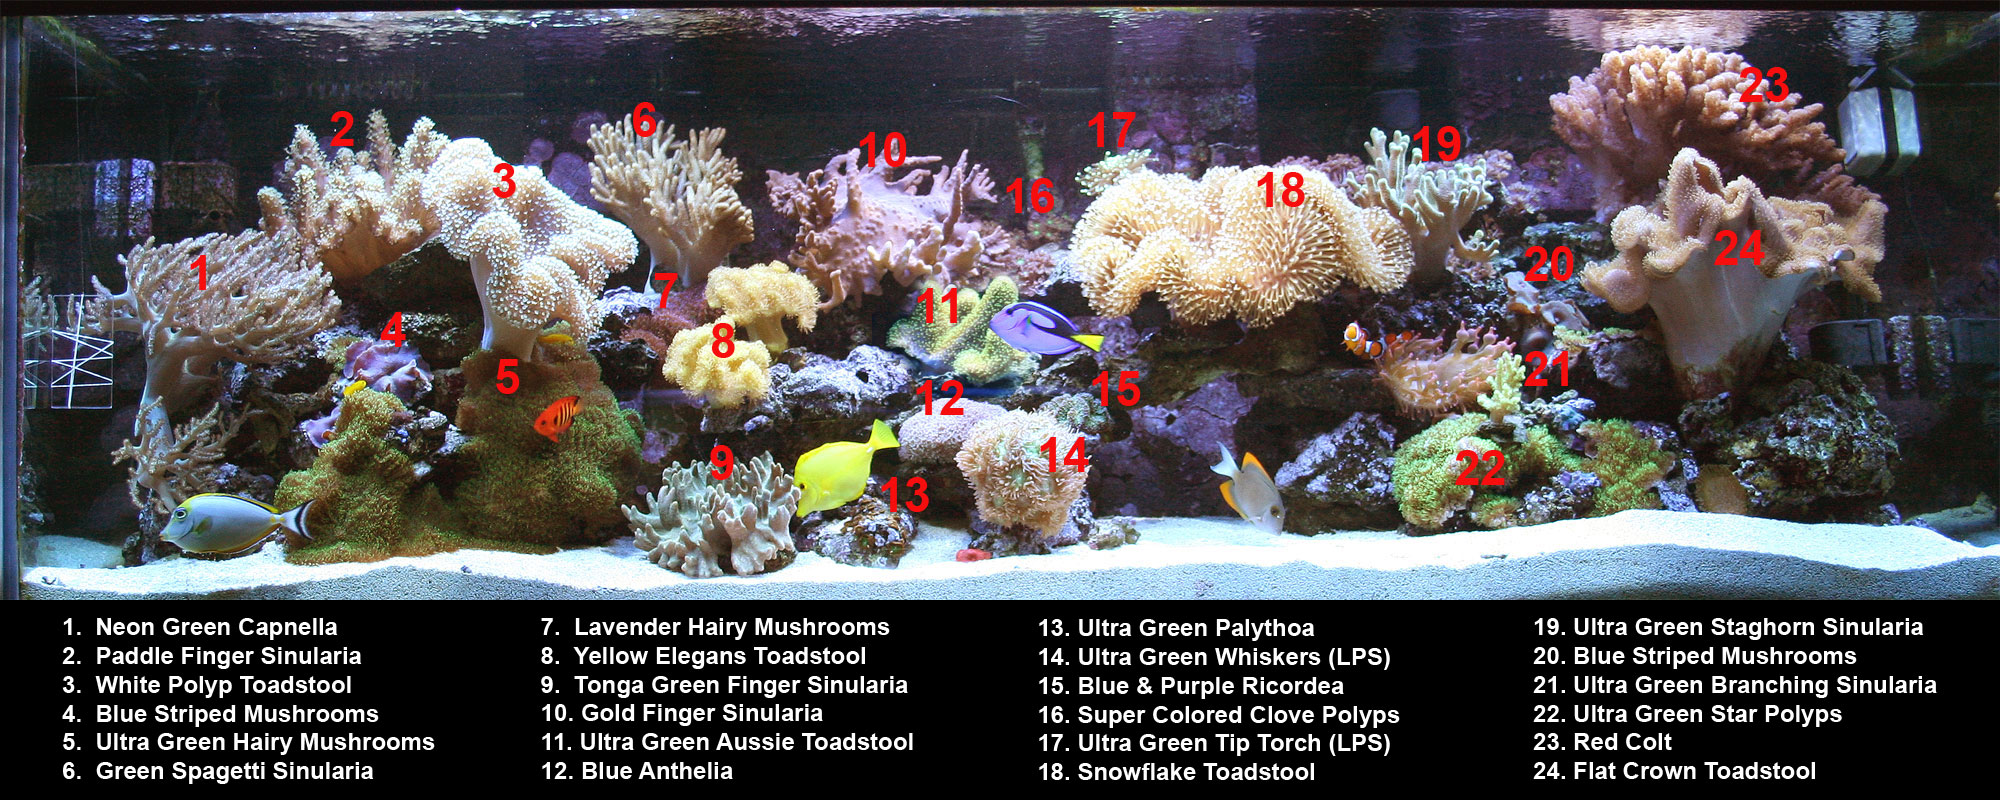 ultra green star polyps soft coral tank raised soft coral aquacorals